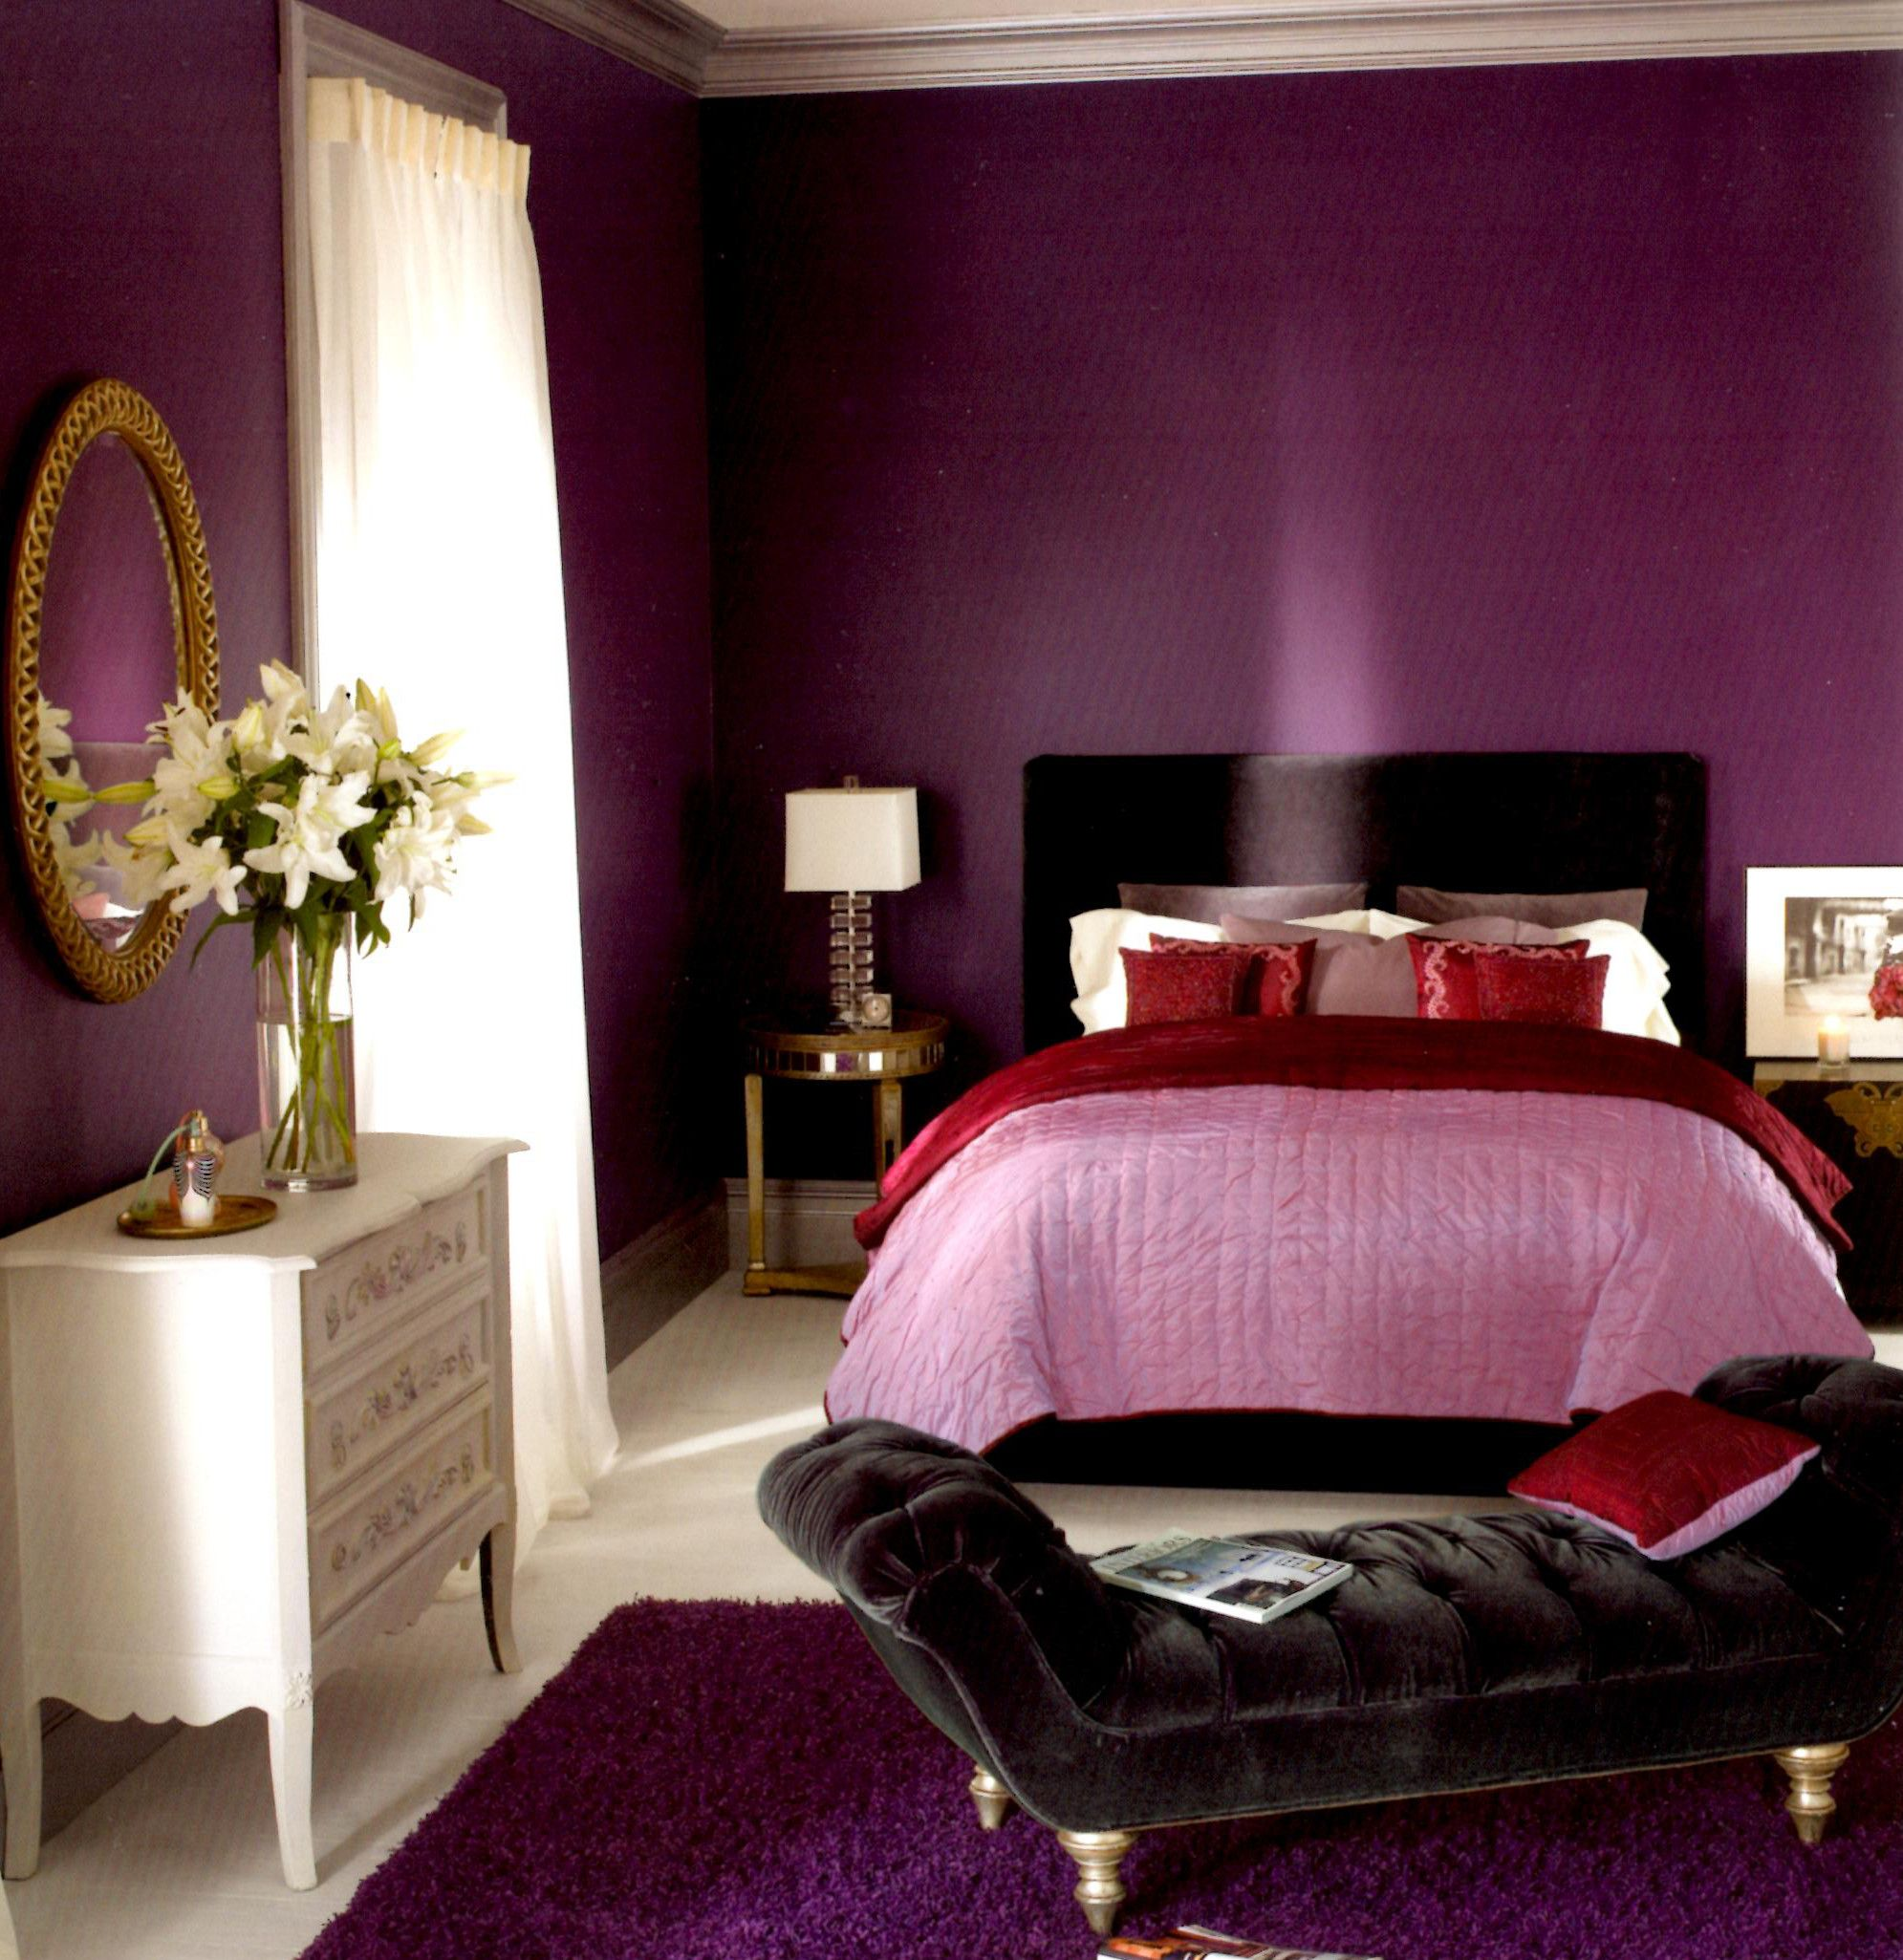 Purple room paint ideas - Remarkable Purple Wall Paneling Colors As Smart Bedroom Paint Ideas In Teenage Bedroom Decor Also White